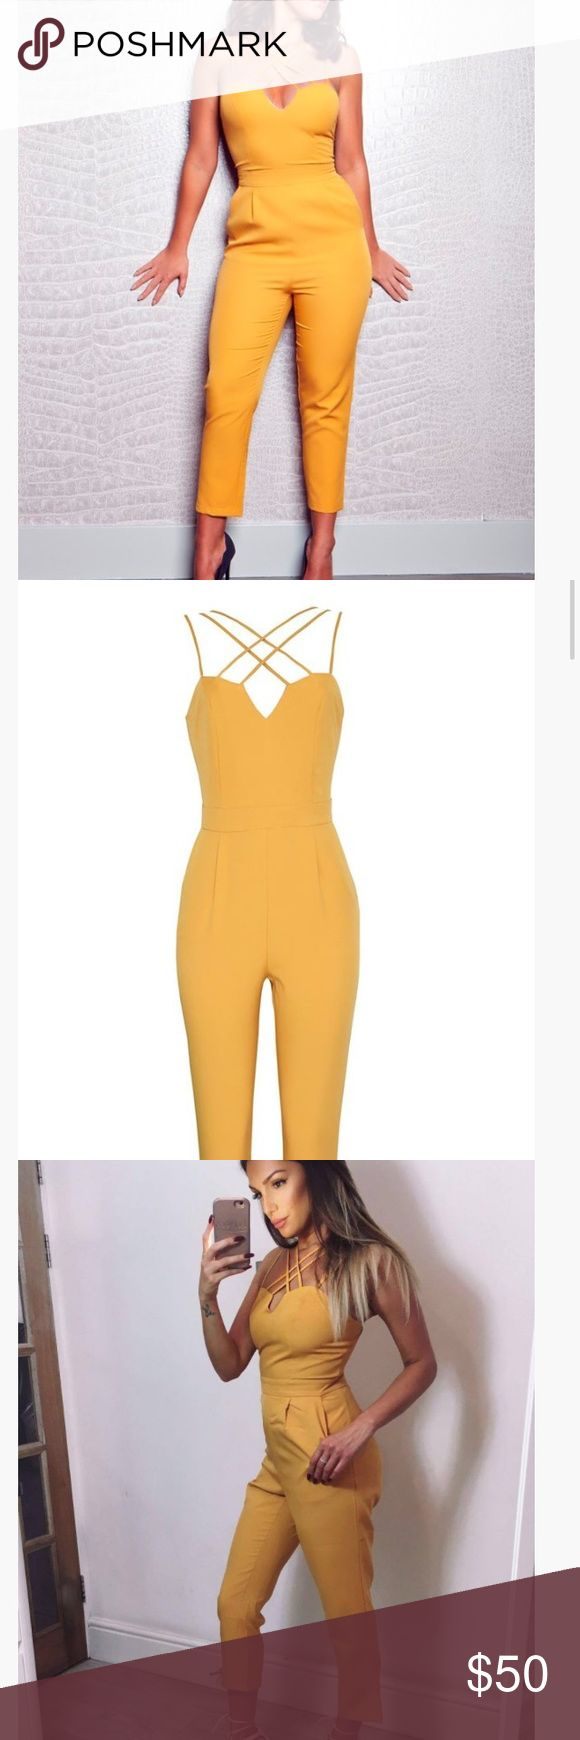 Honeyz VIP Fame Game jumpsuit Great quality yellow jumpsuit. Unfortunately it was too small for me, and the boutique is in the UK so it costs too much to send back. Other